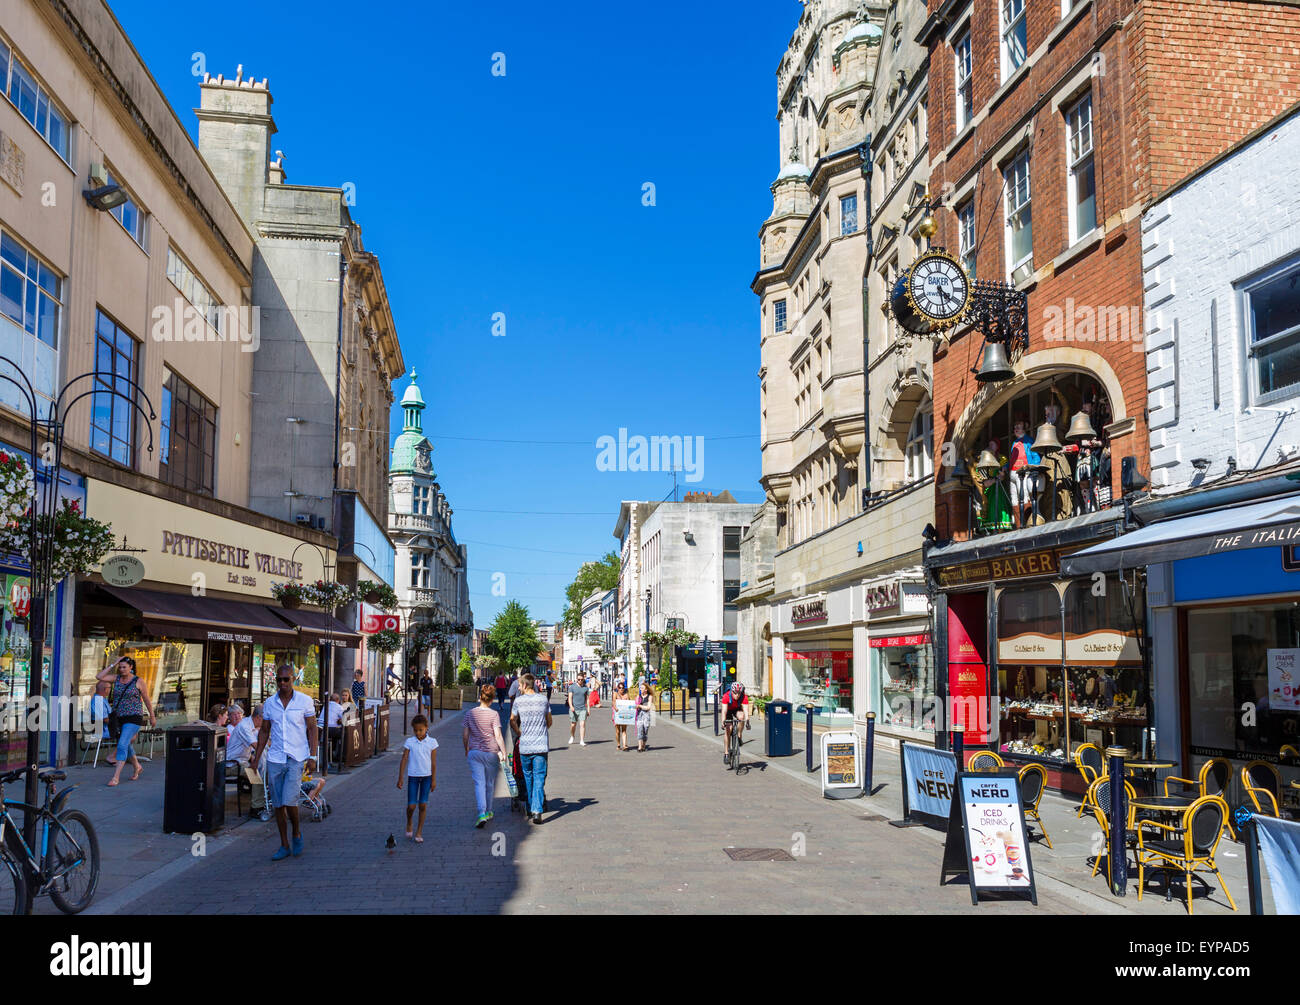 Shops on Southgate Street in the city centre, Gloucester, Gloucestershire, England, UK - Stock Image